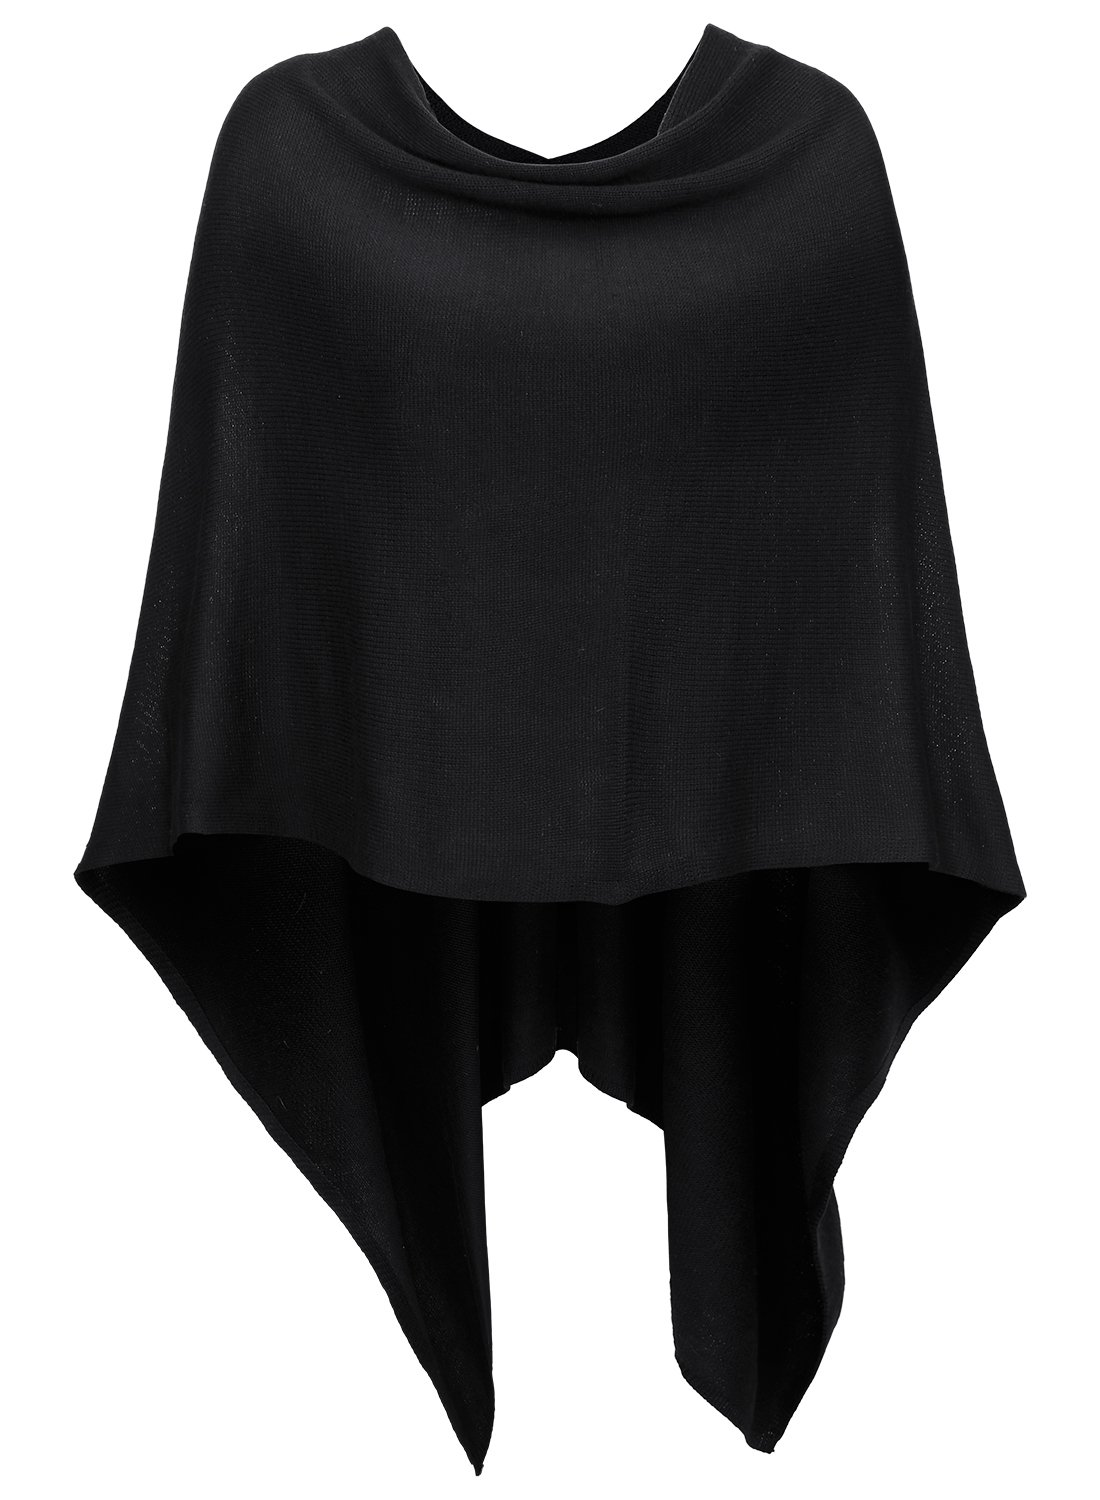 DJT Womens Solid Knit Short Asymmetric Wrap Poncho Topper Black